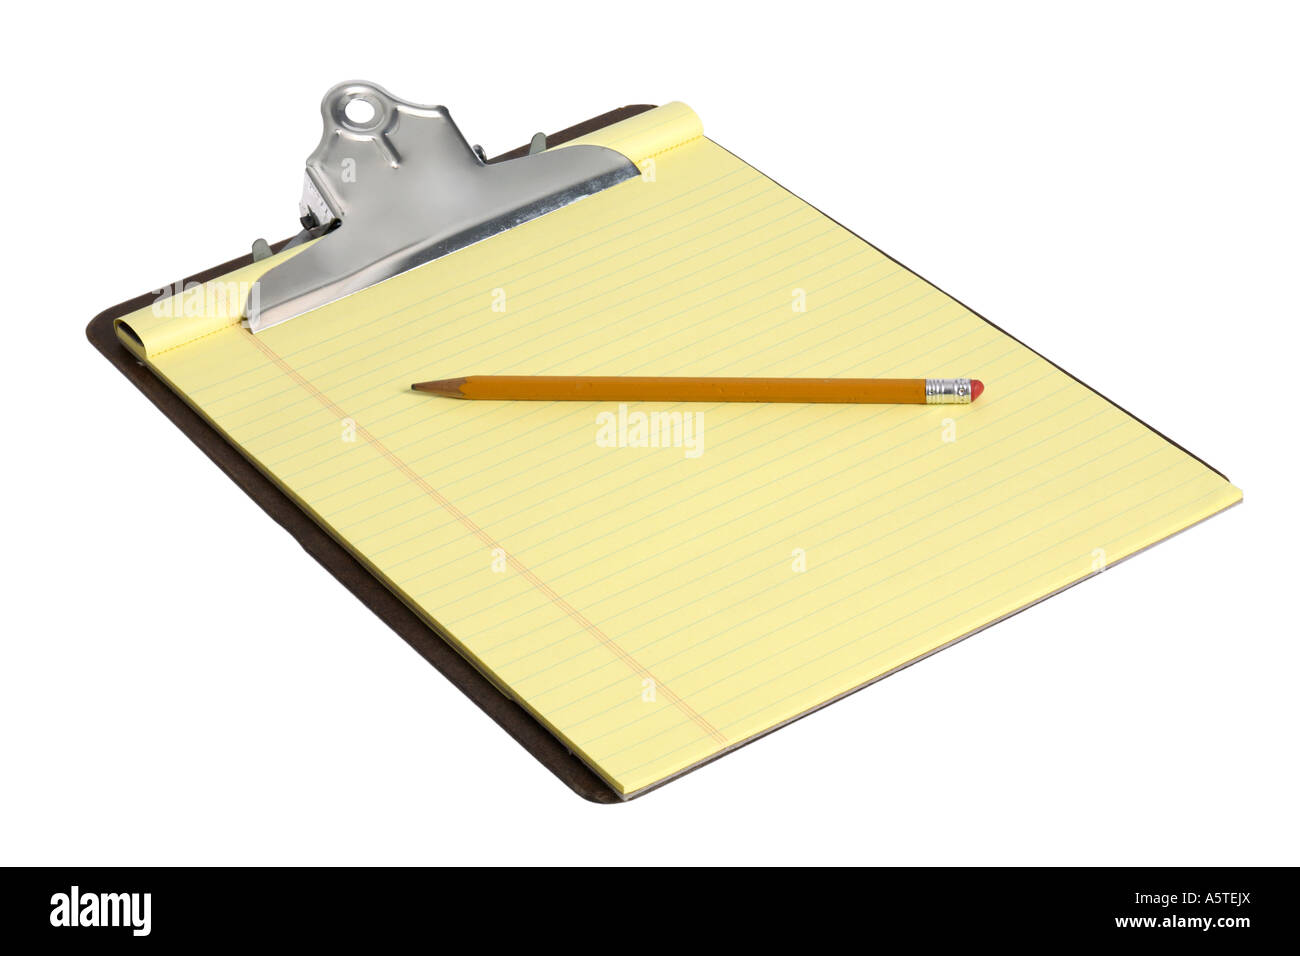 Clipboard with yellow paper and pencil cut out on white background - Stock Image